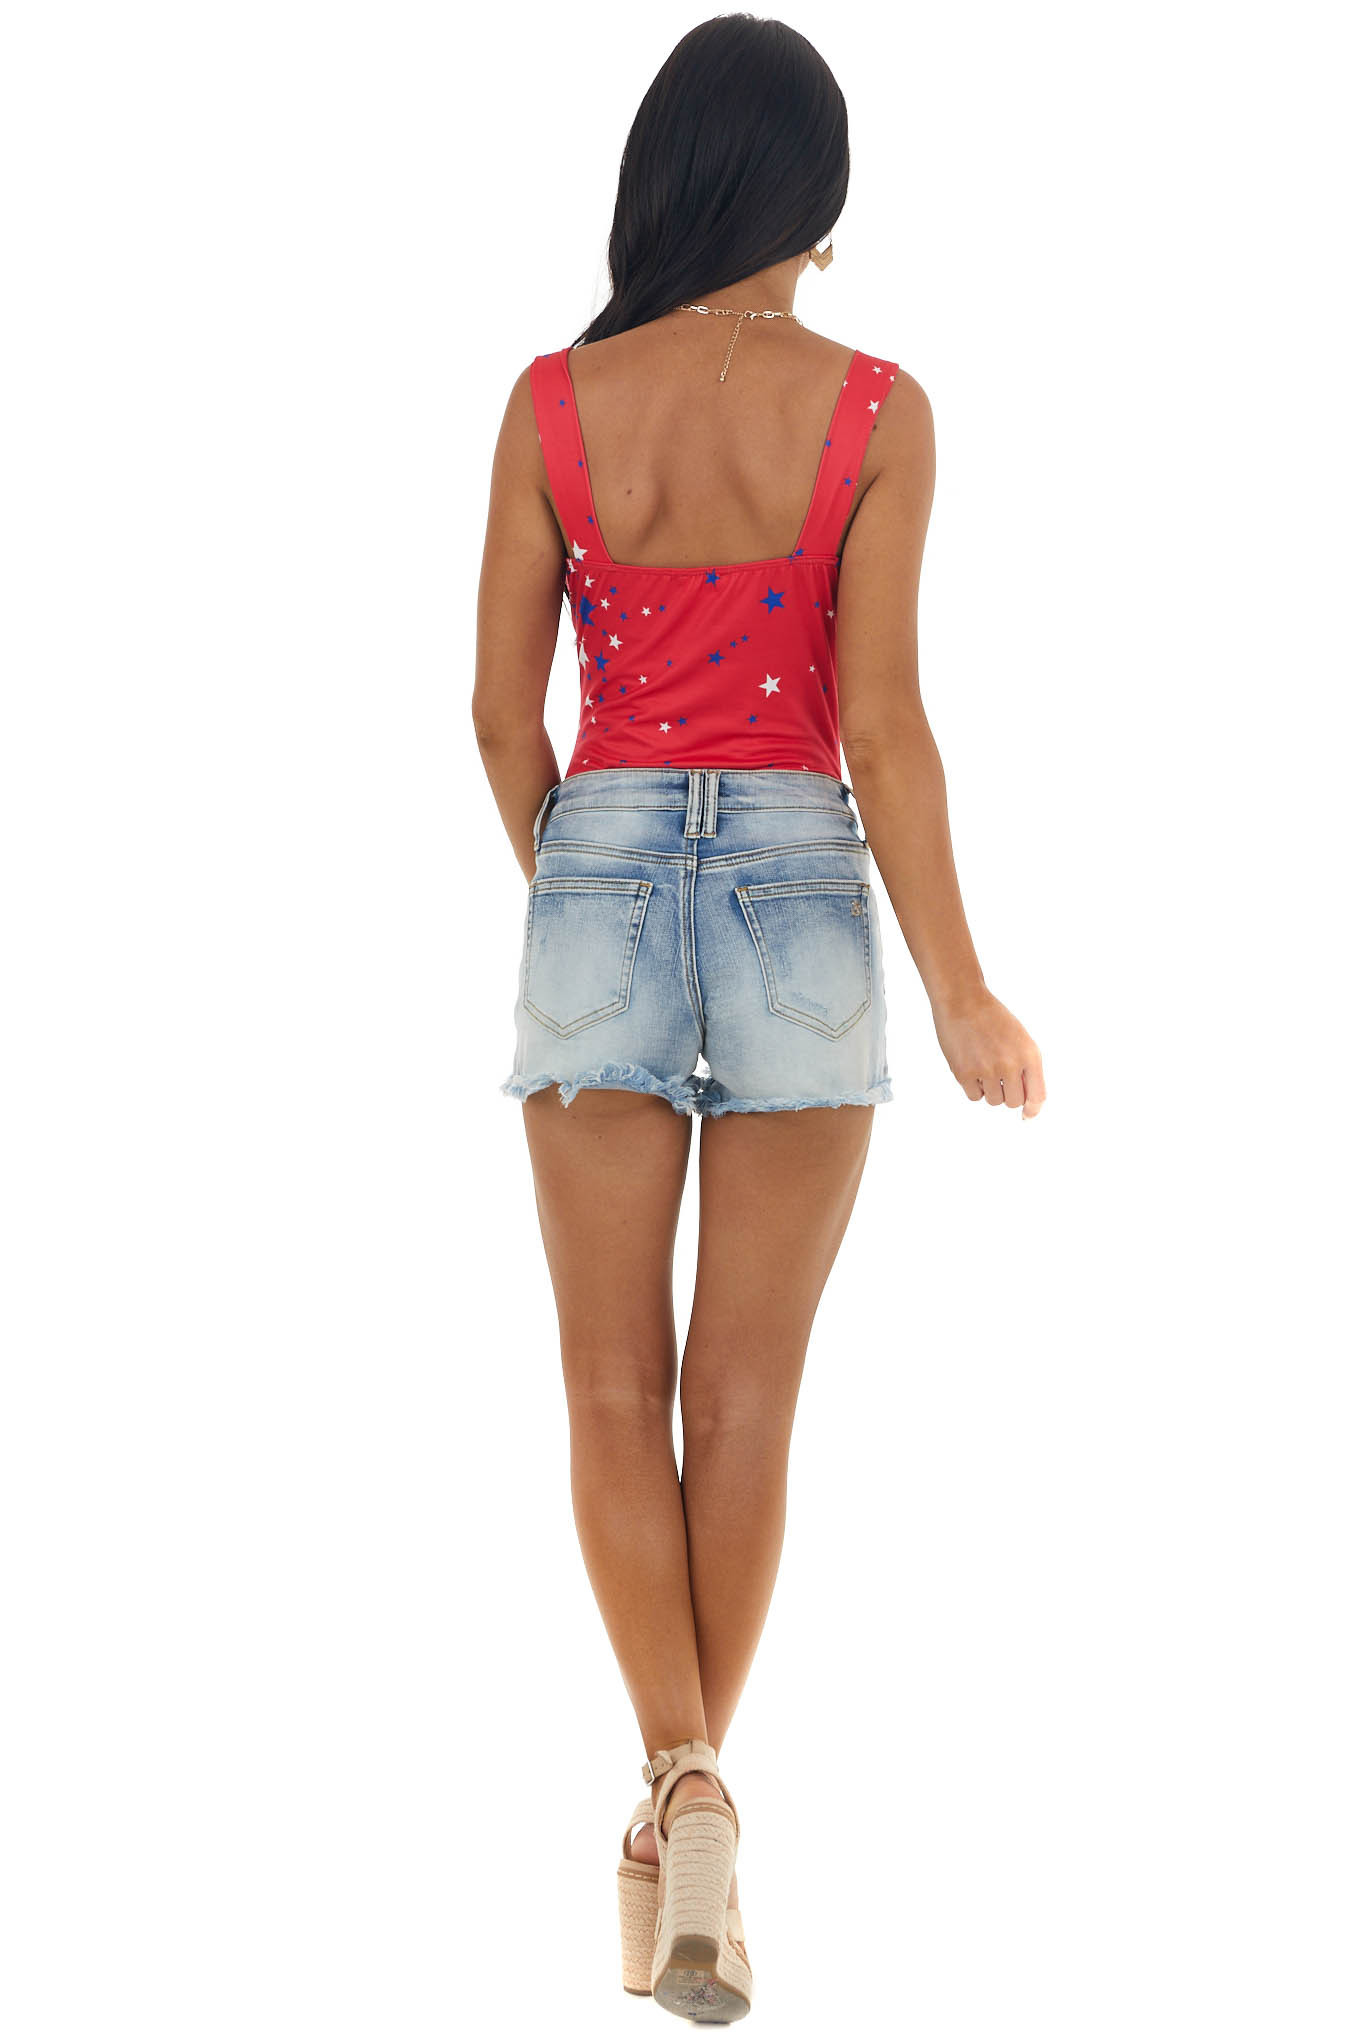 Red Star Print Bodysuit with Straps